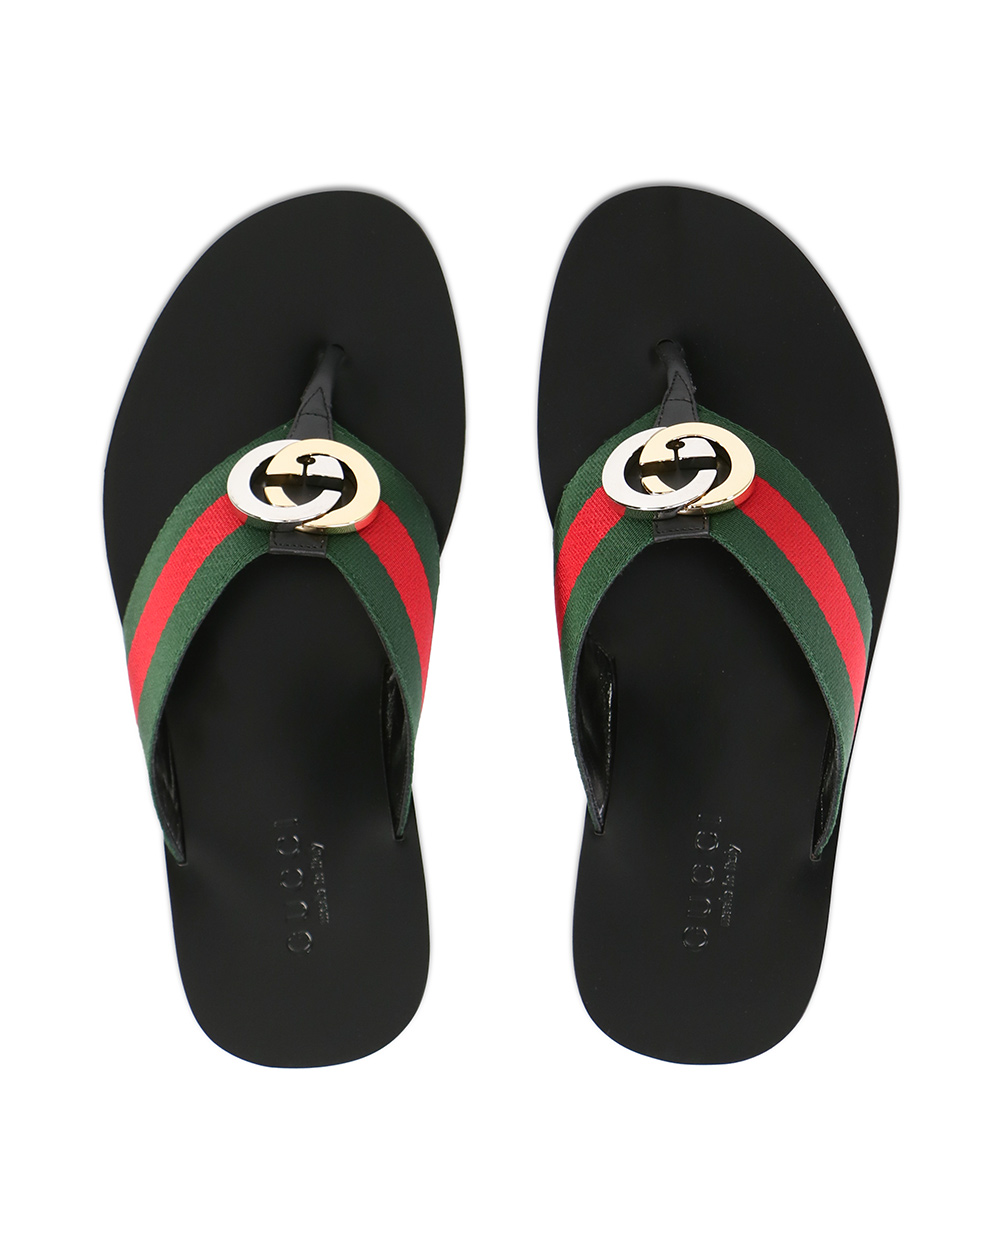 Thong Sandal With Web 3